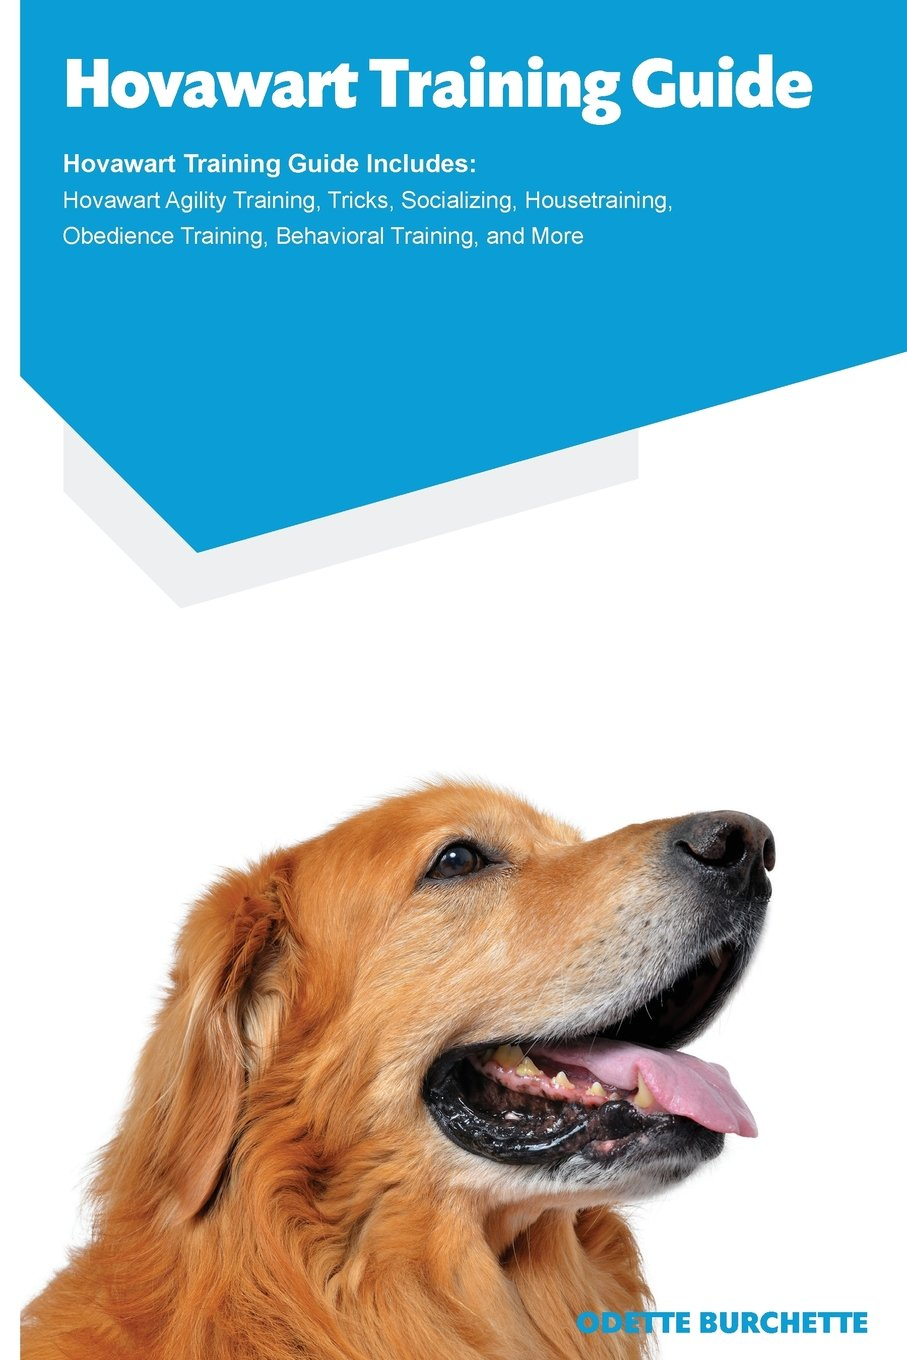 Download Hovawart Training Guide Hovawart Training Guide Includes: Hovawart Agility Training, Tricks, Socializing, Housetraining, Obedience Training, Behavioral Training, and More pdf epub